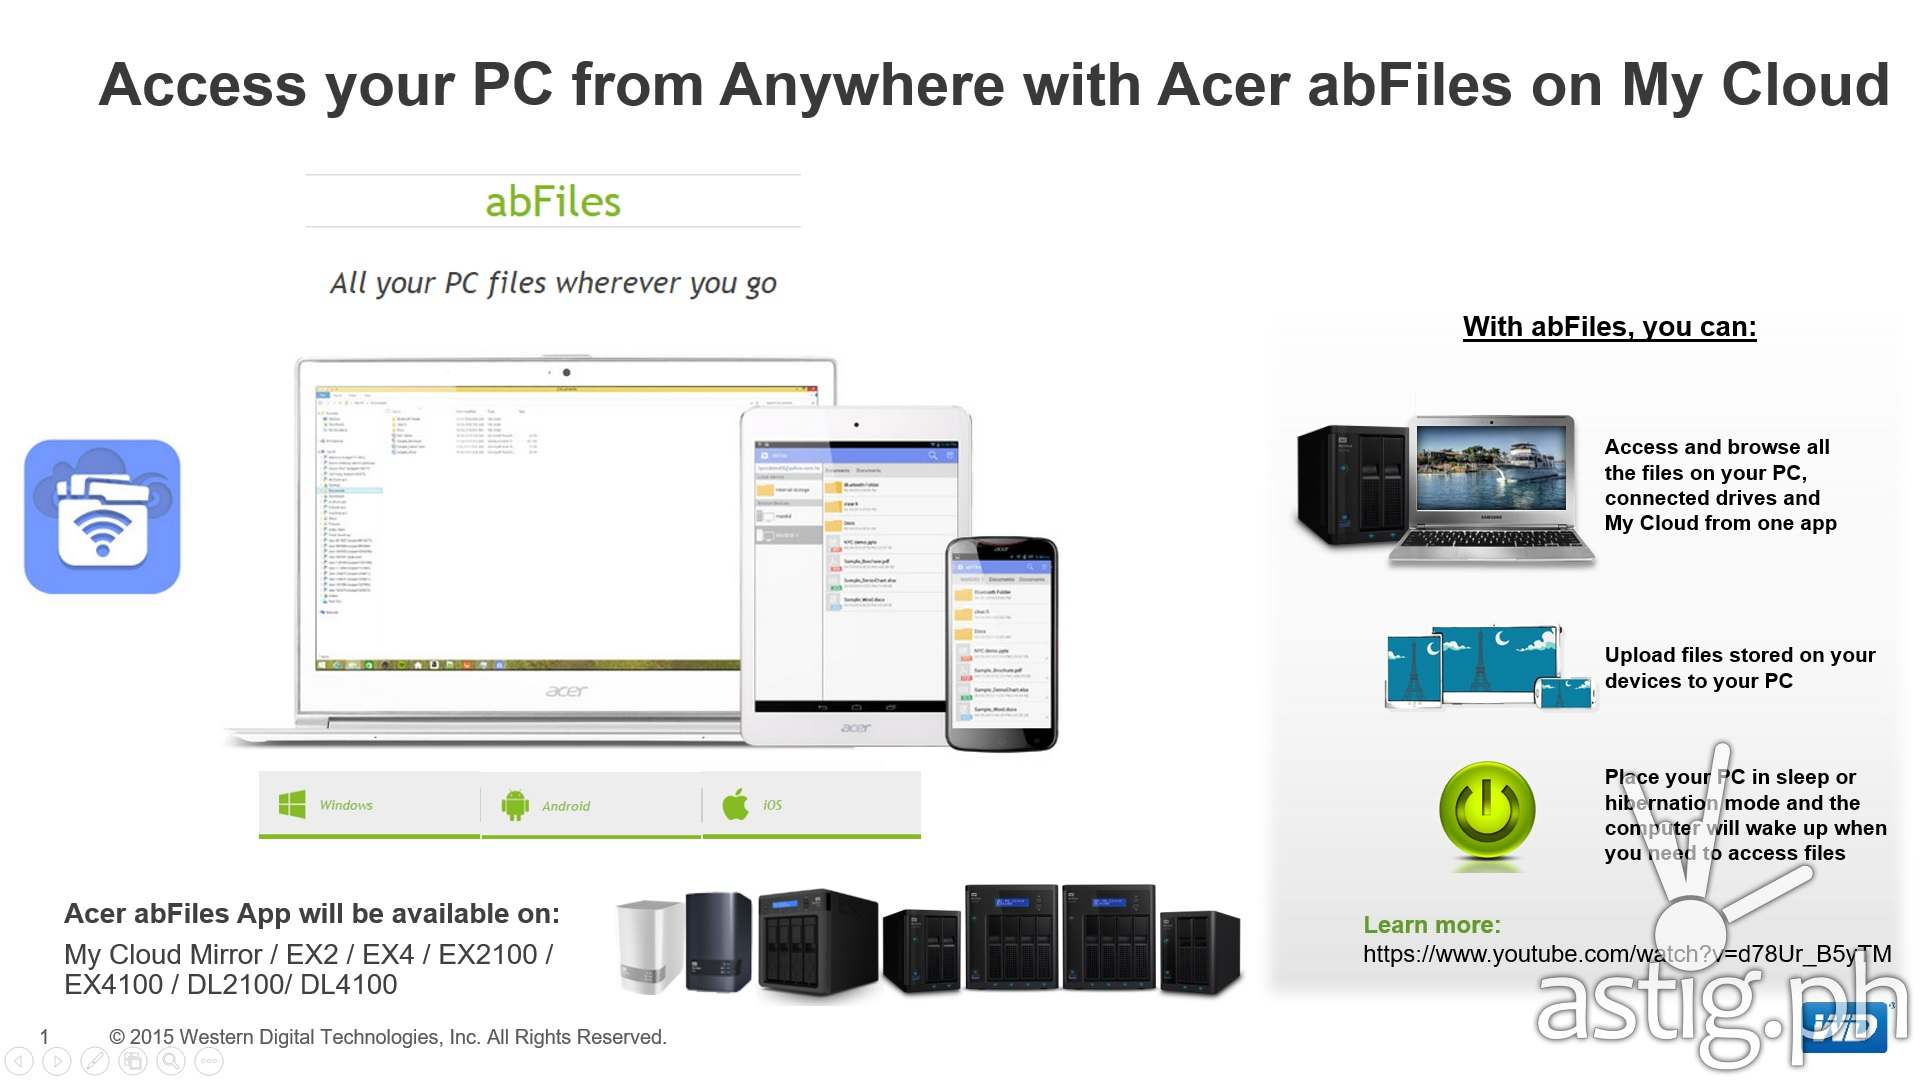 Acer and WD Bring BYOC to My Cloud NAS Series | ASTIG PH